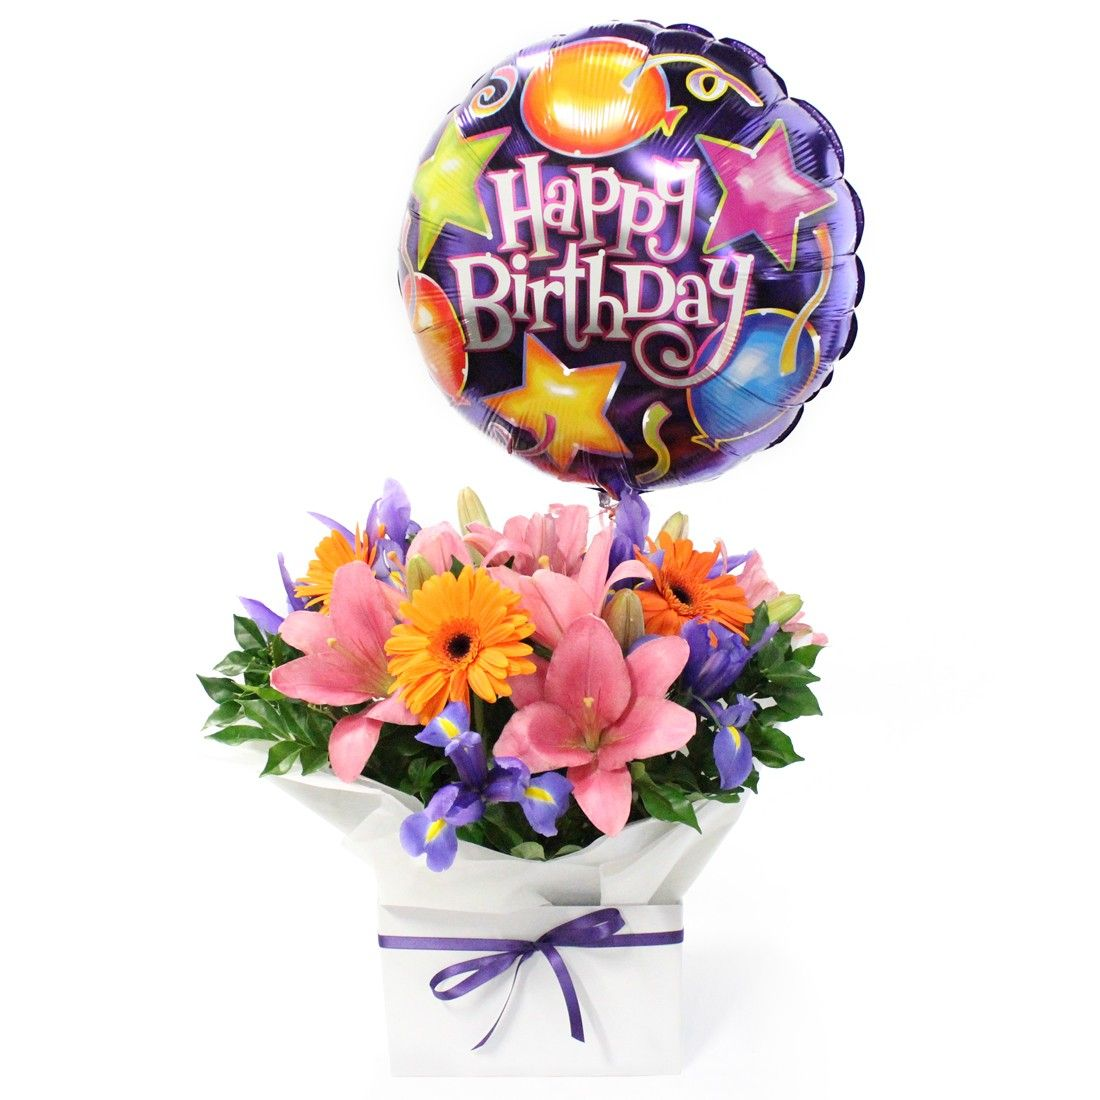 Happy birthday beautiful flowers httpwww happy birthday beautiful flowers httphappybirthdaywishesonline dhlflorist Choice Image